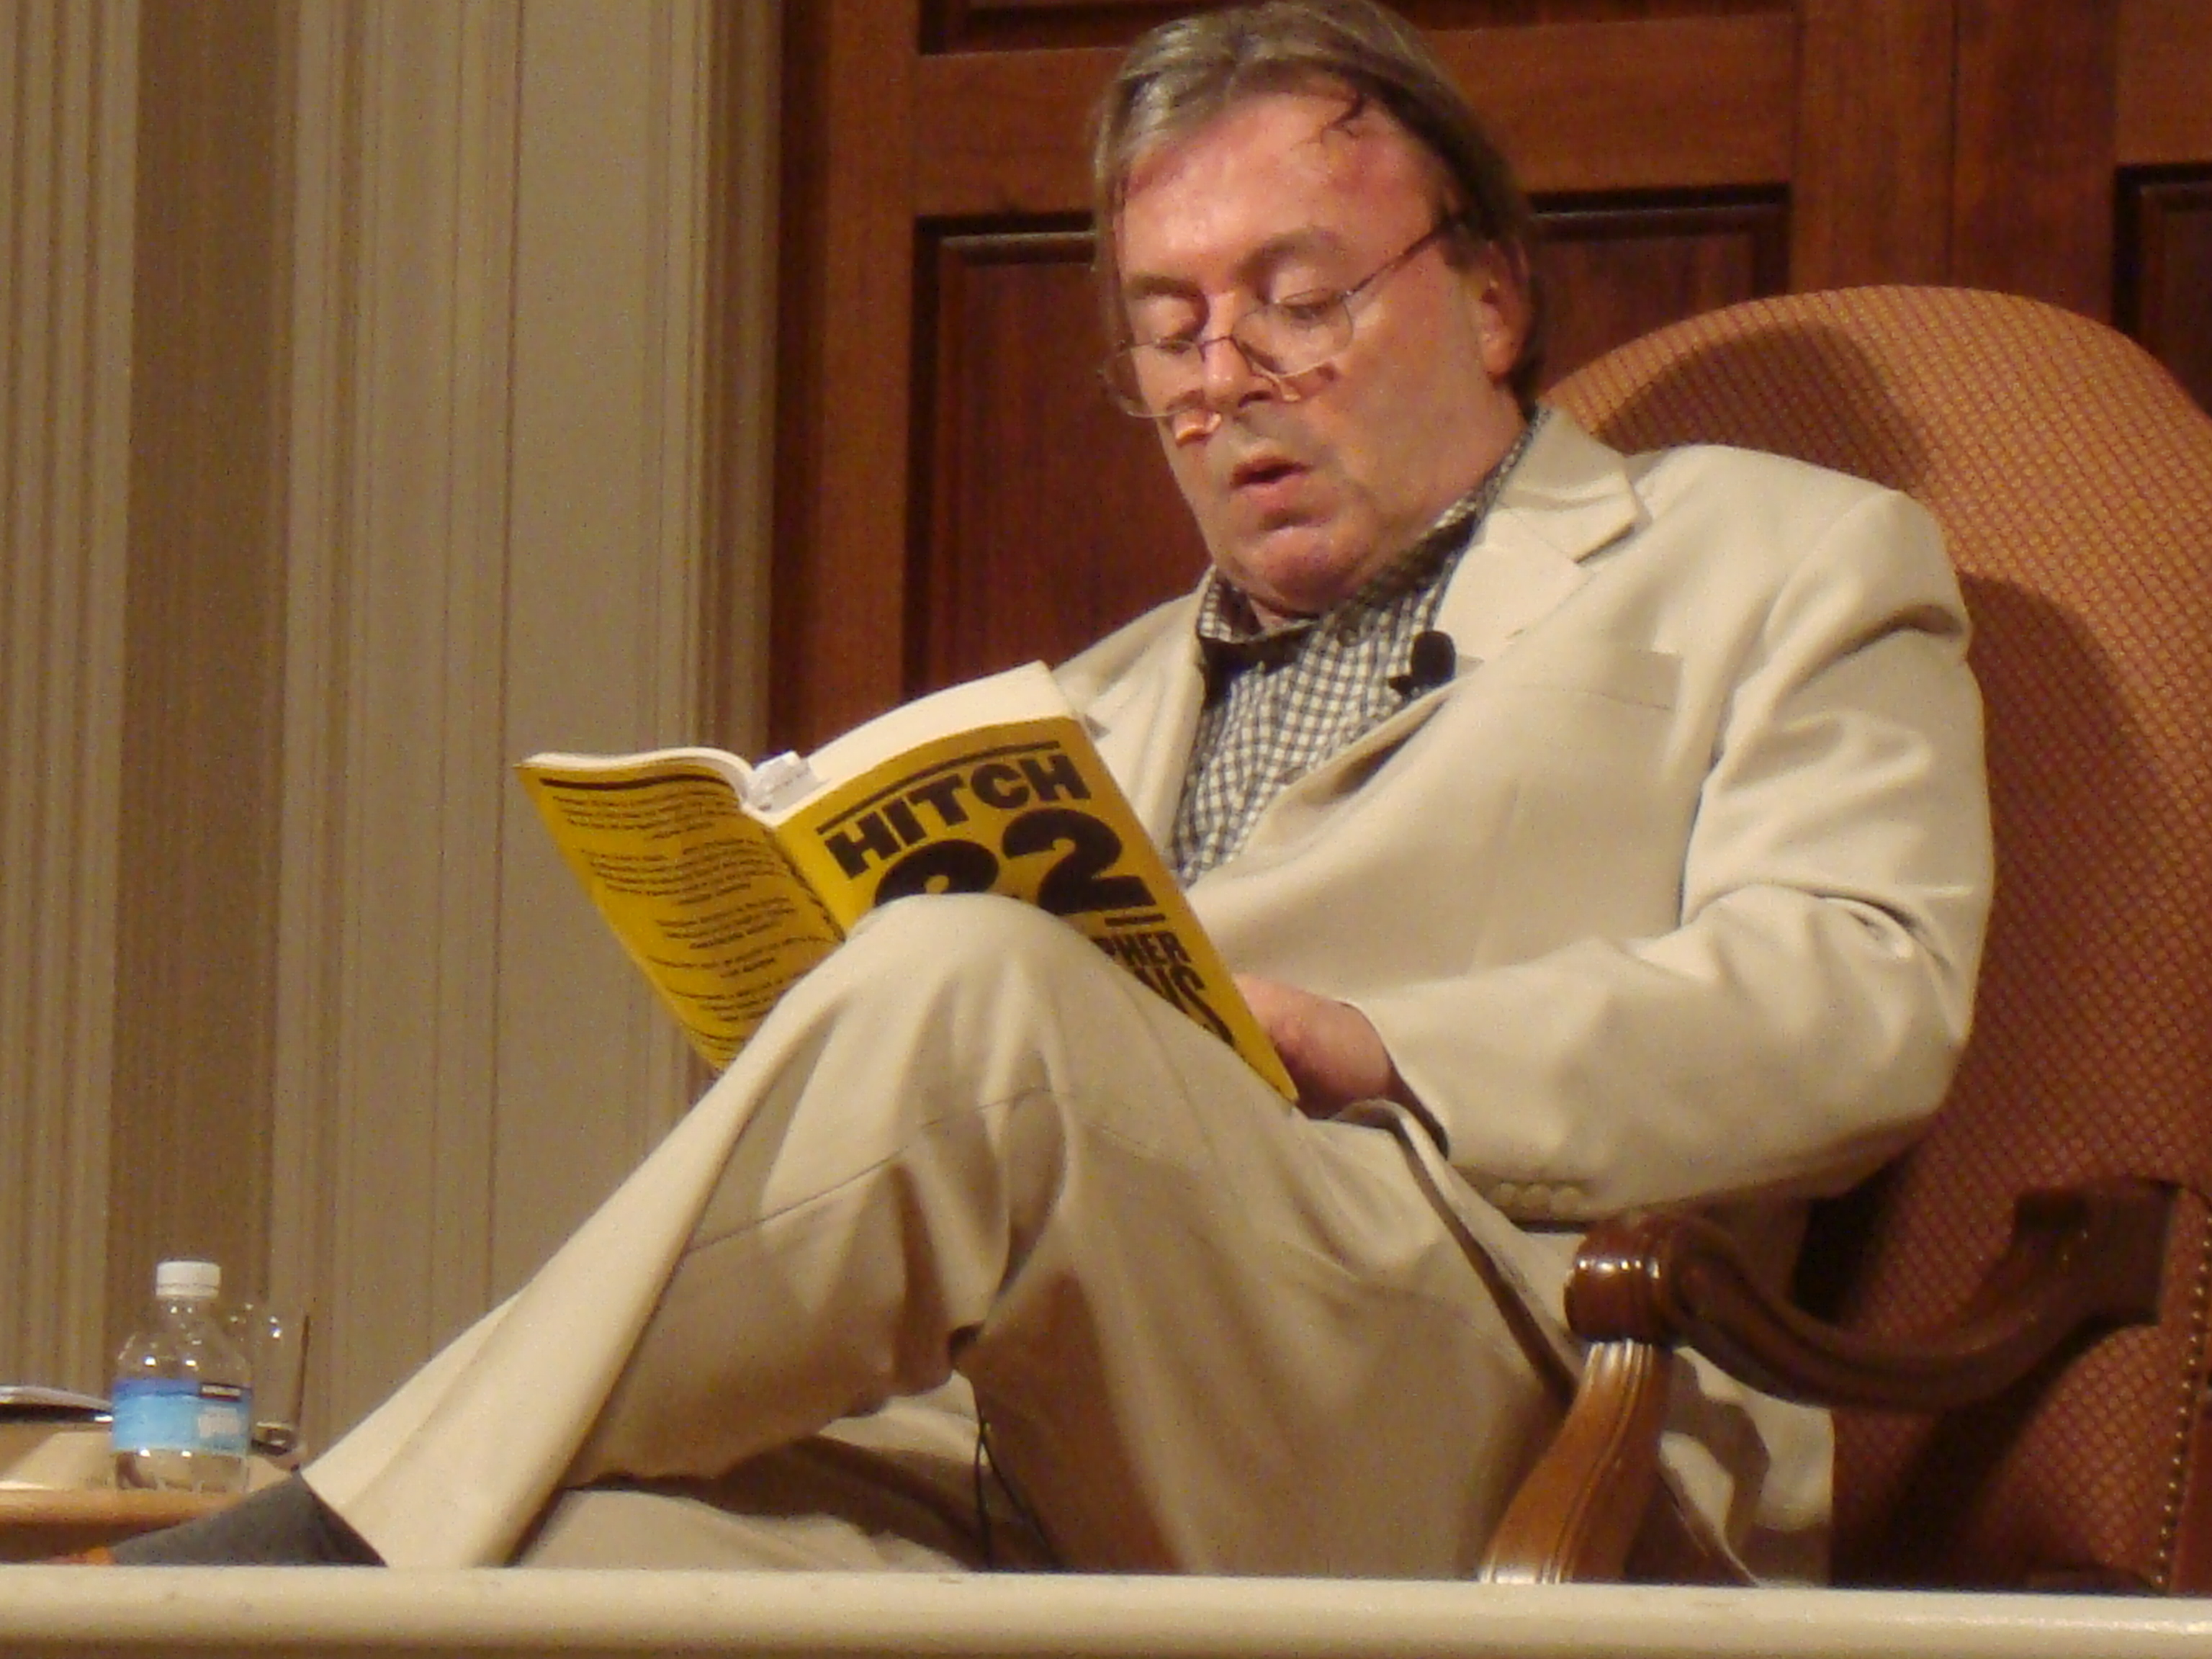 Christopher_Hitchens_reading_his_book_Hitch_22